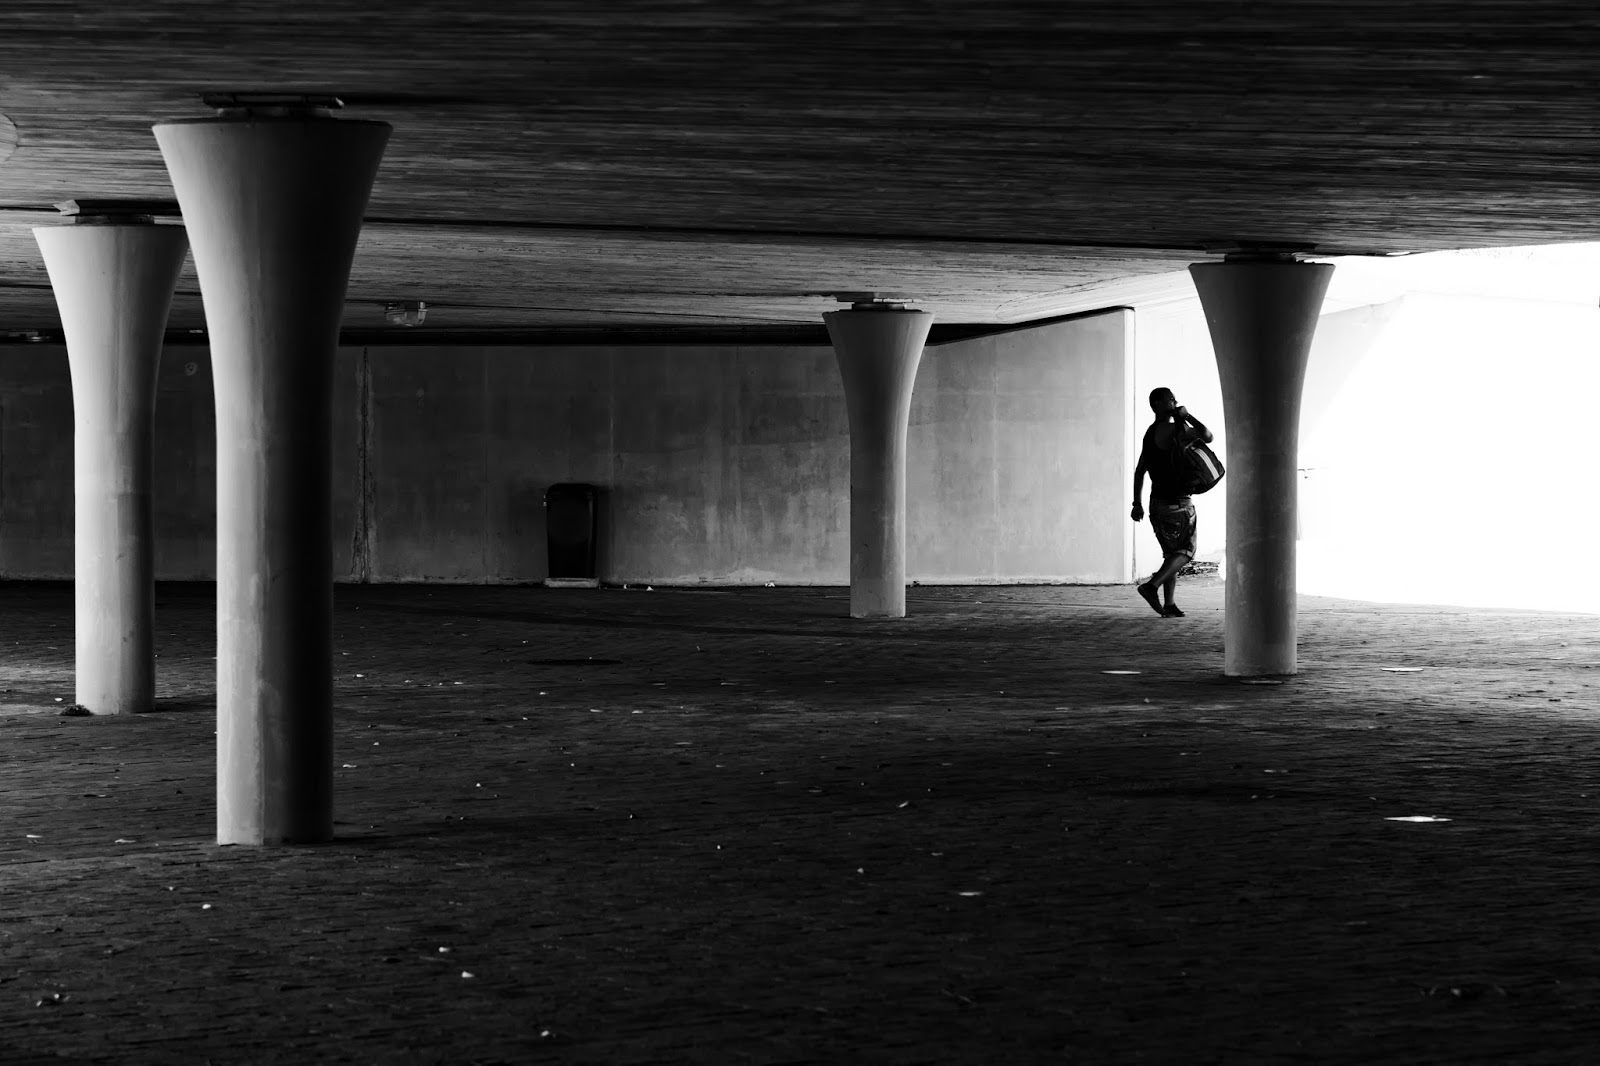 A man walks out of the space under a flyover